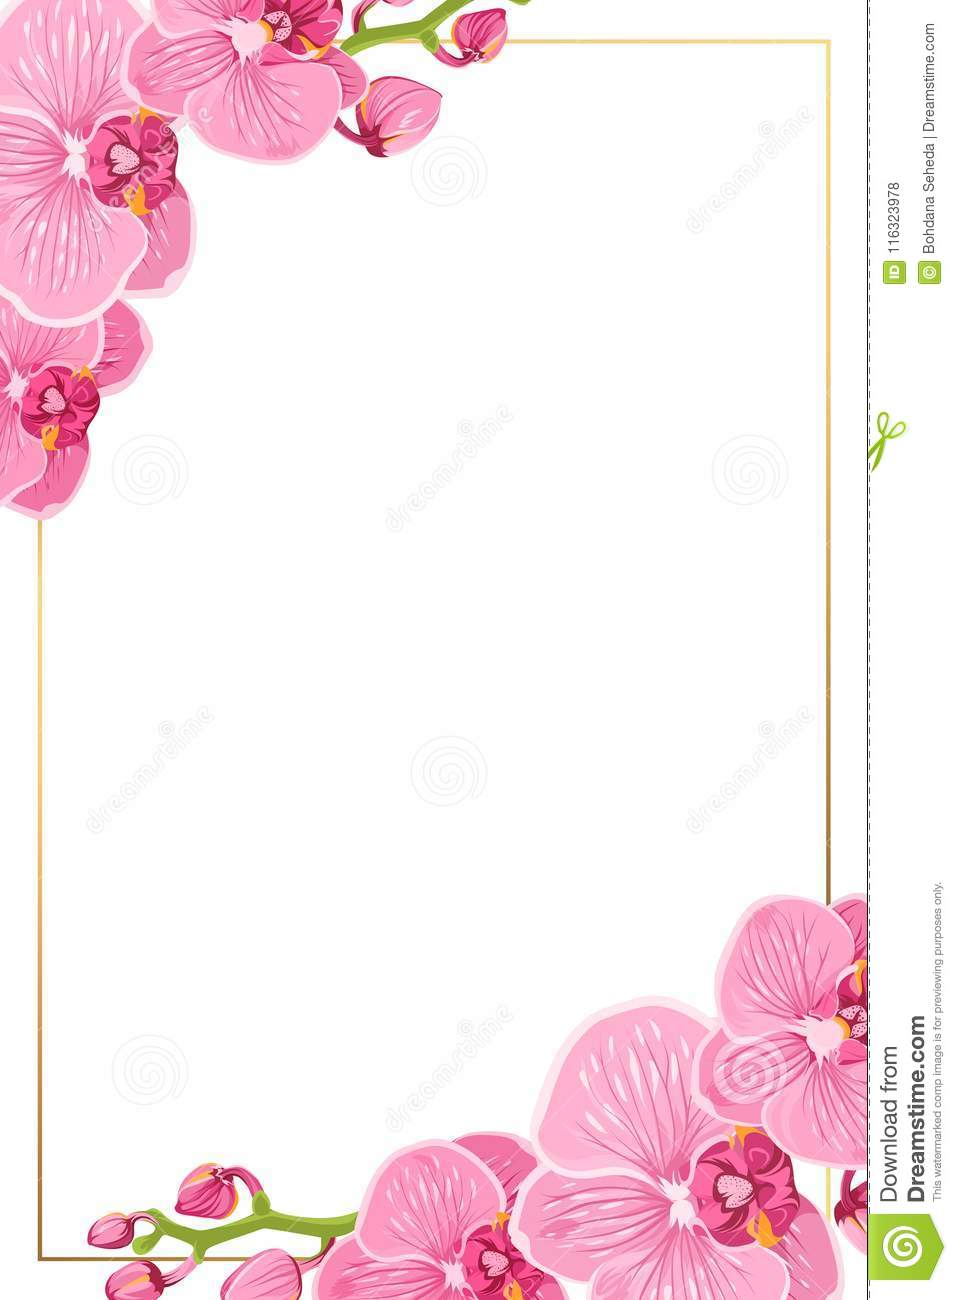 pink orchid flowers border frame template card stock illustration